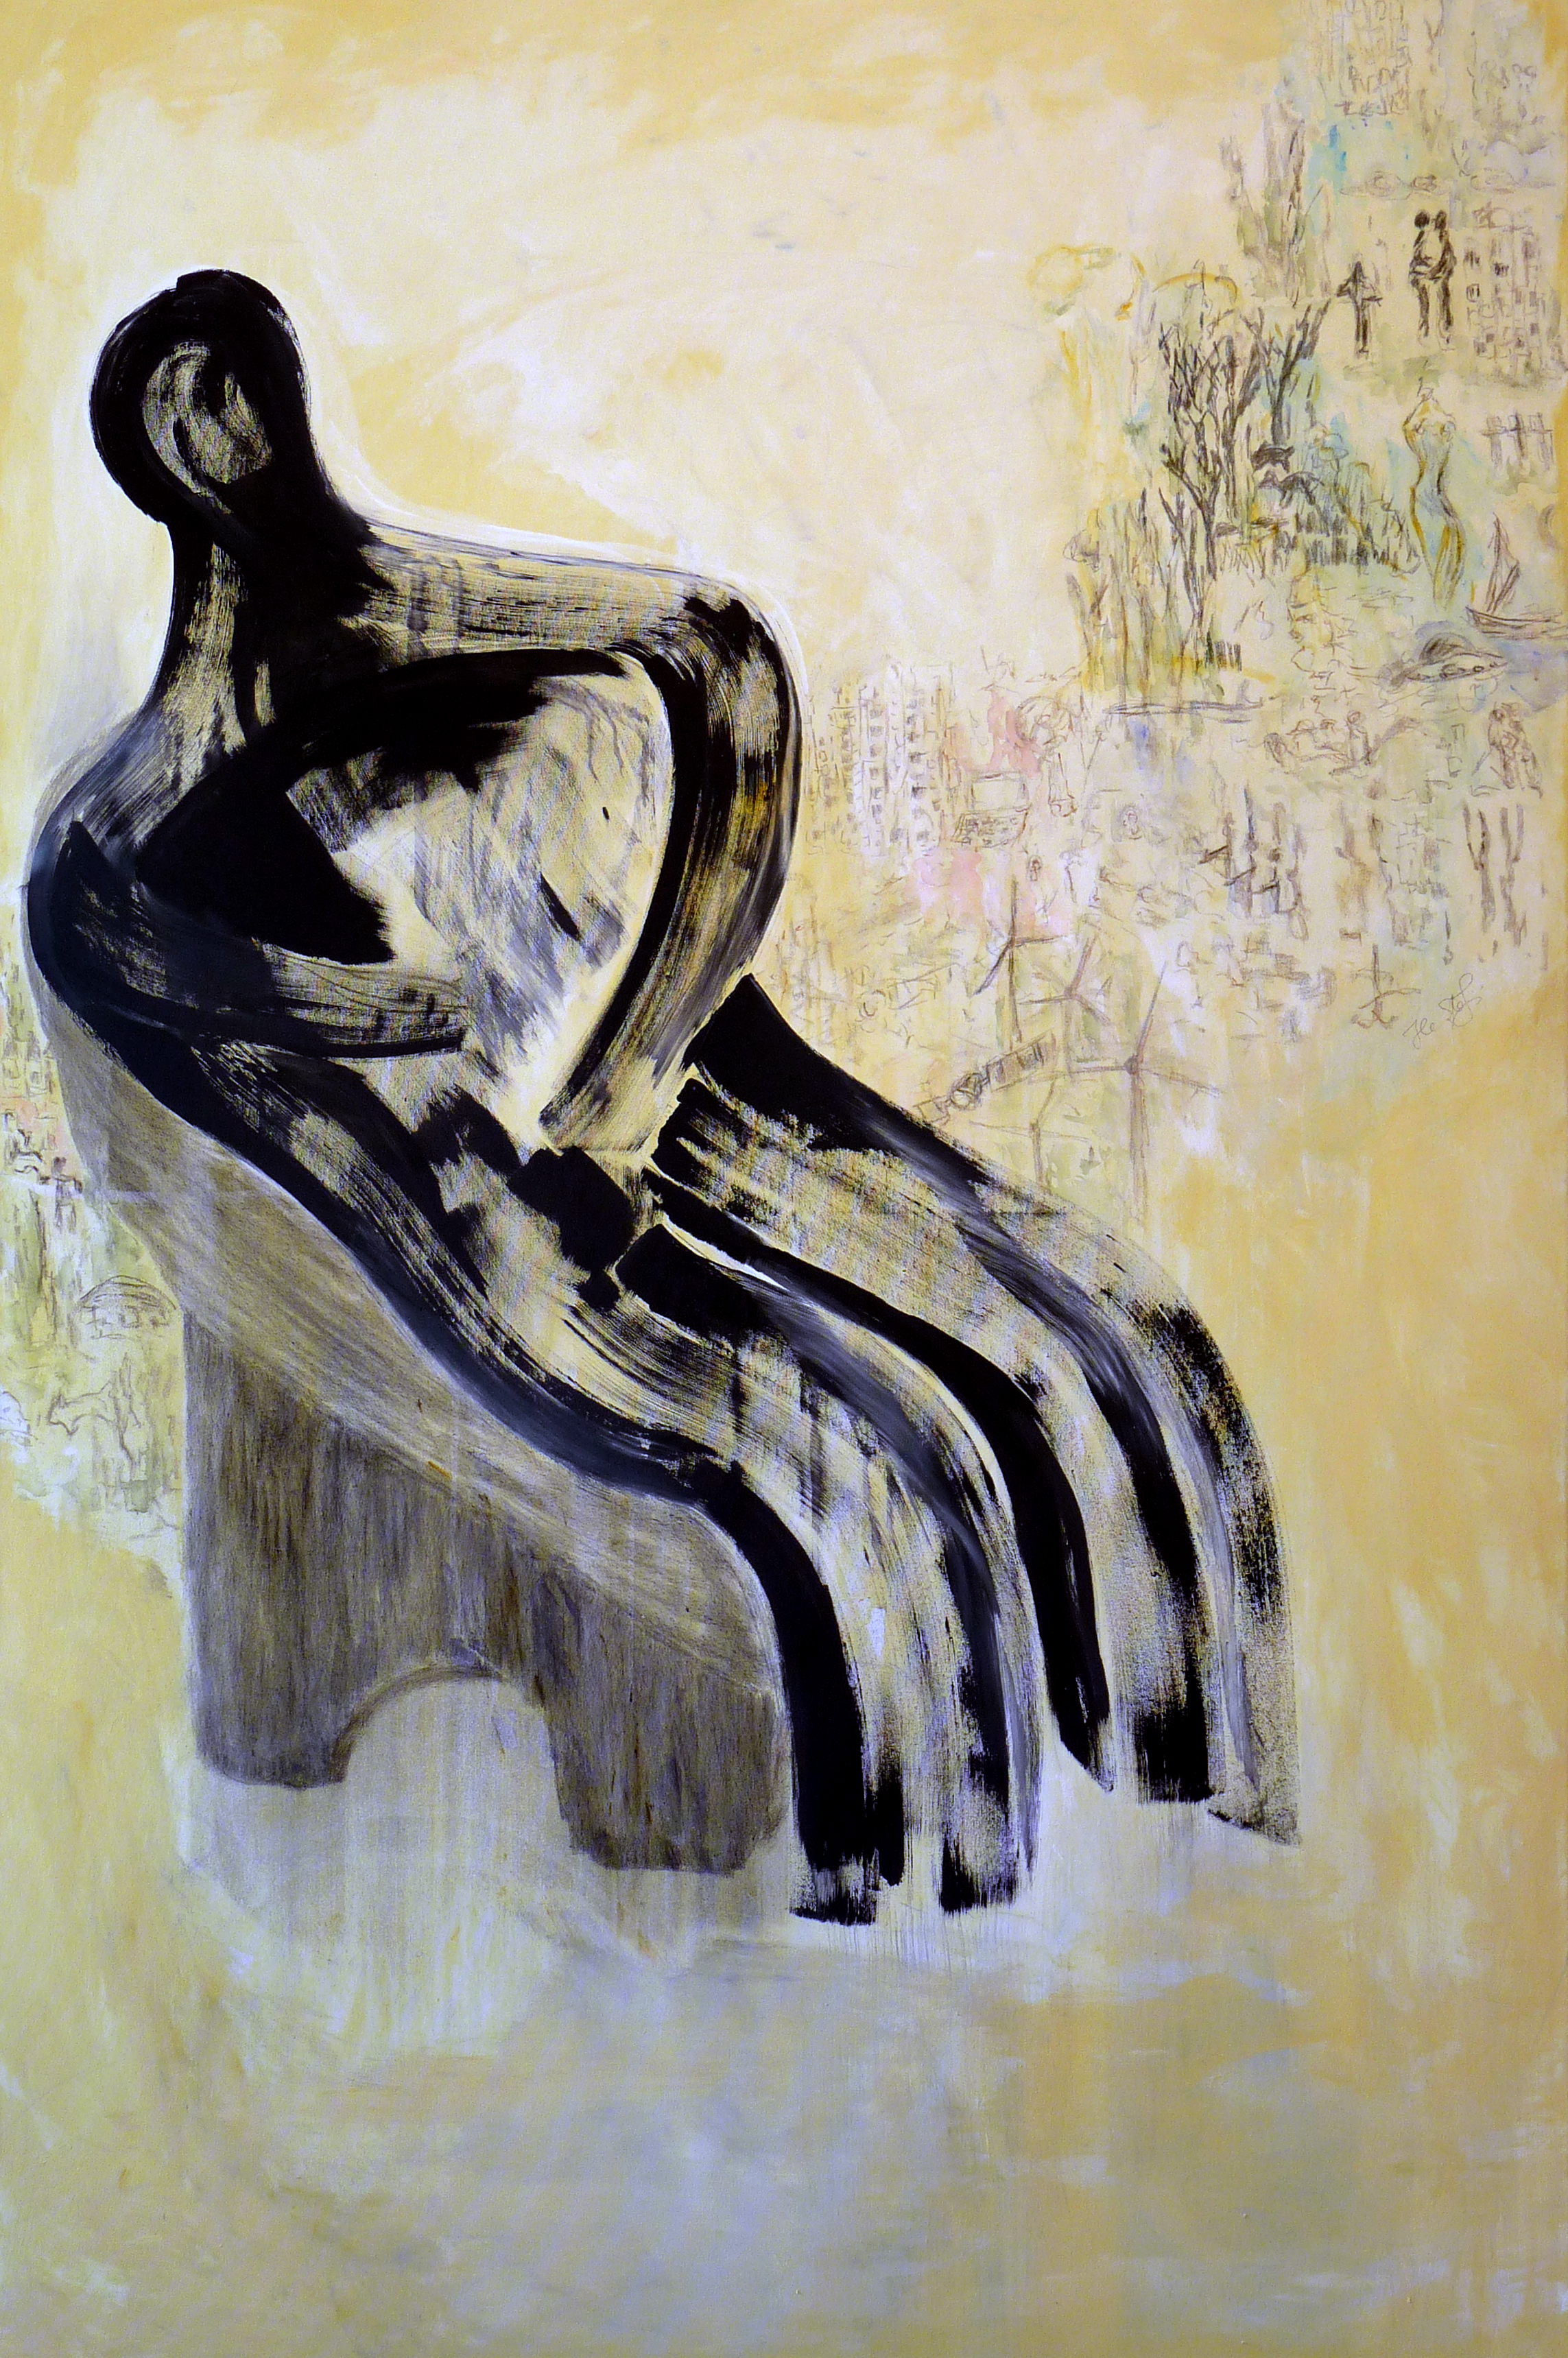 Contemplation State, 180x120cm, acrylic, charcoal on canvas, 2014